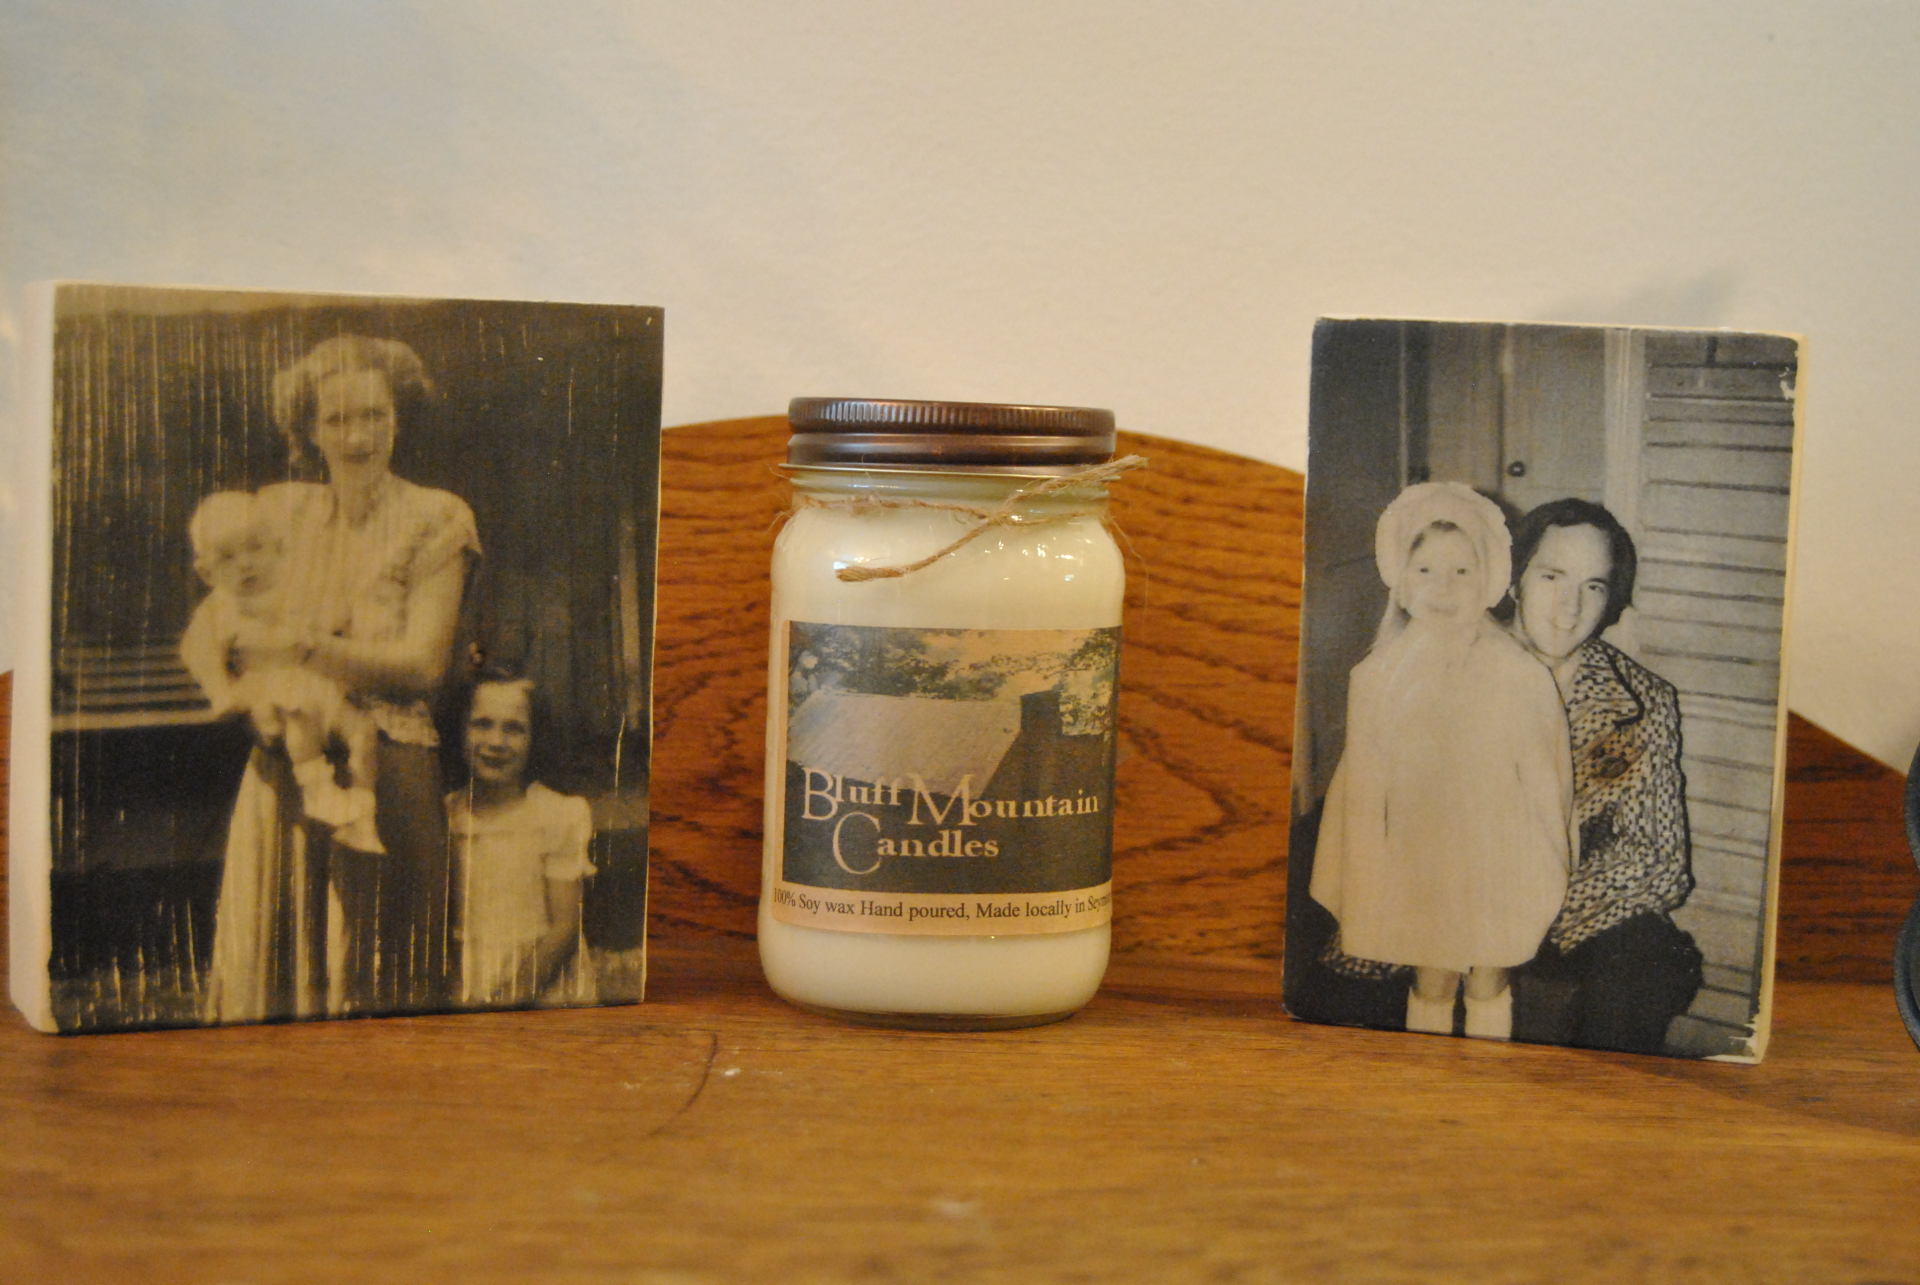 16 oz square mason jar candle